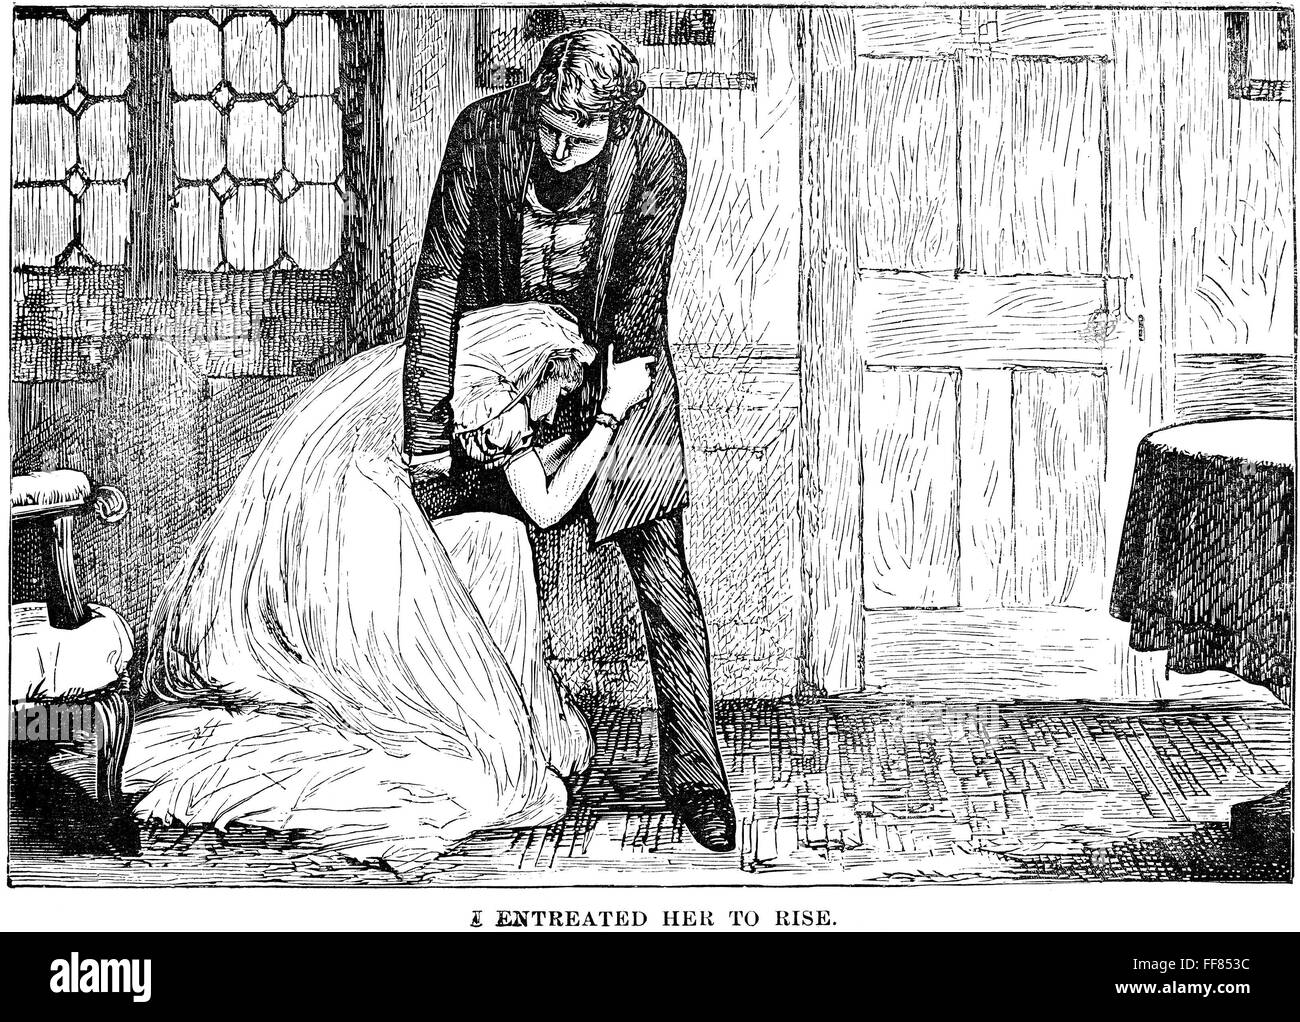 charles dickens great expectations chapter 8: pips visit to mrs havisham essay In the story of great expectations (7 [7: flags up that the essay is now going to work at word text level ] ), dickens purposefully portrays miss havisham as an 'unreal' character.